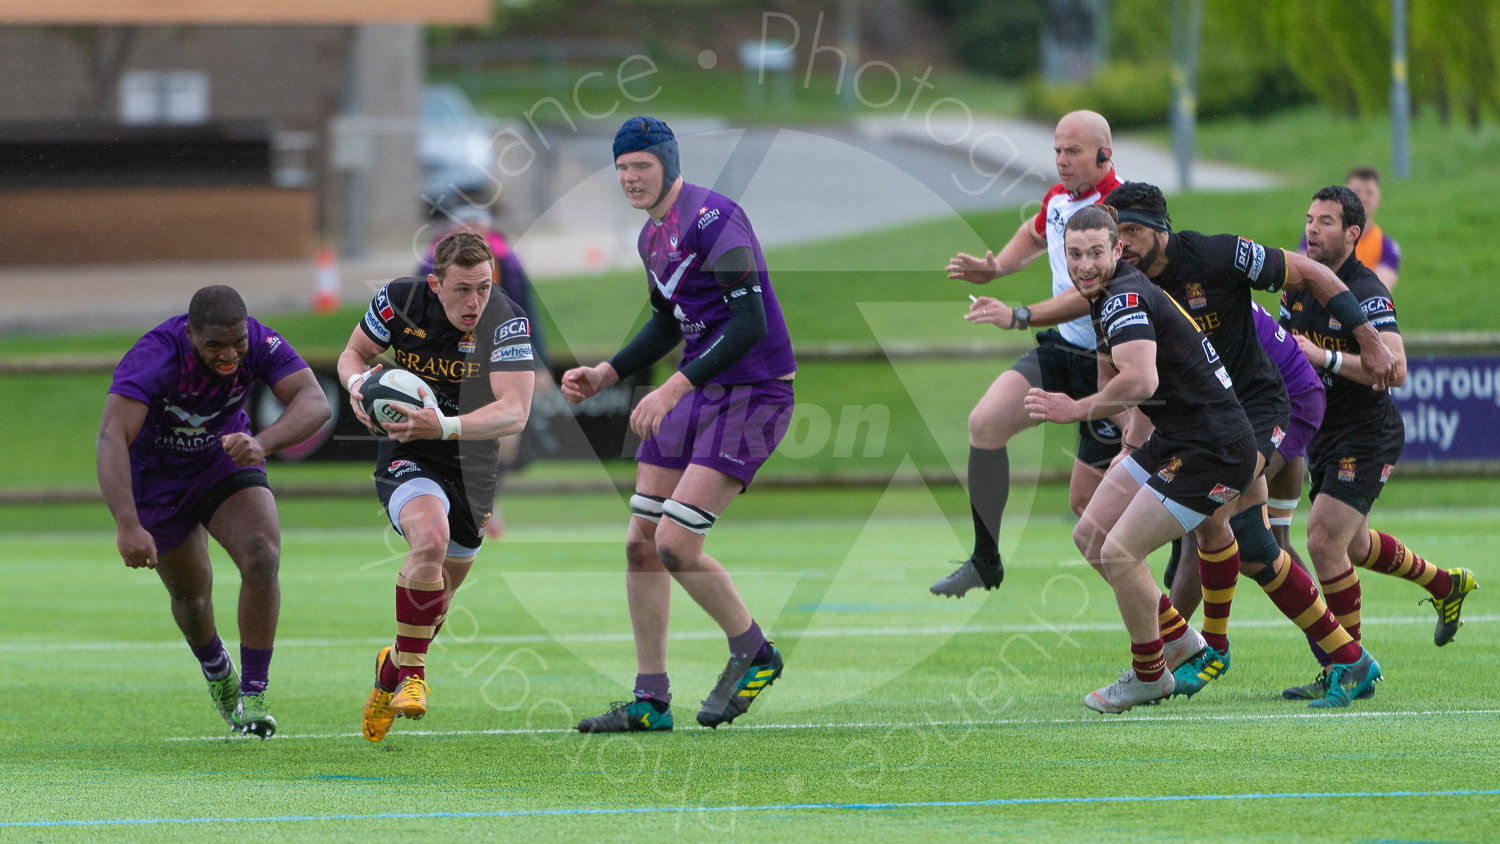 20190427 Loughborough vs Ampthill 1st XV #6178